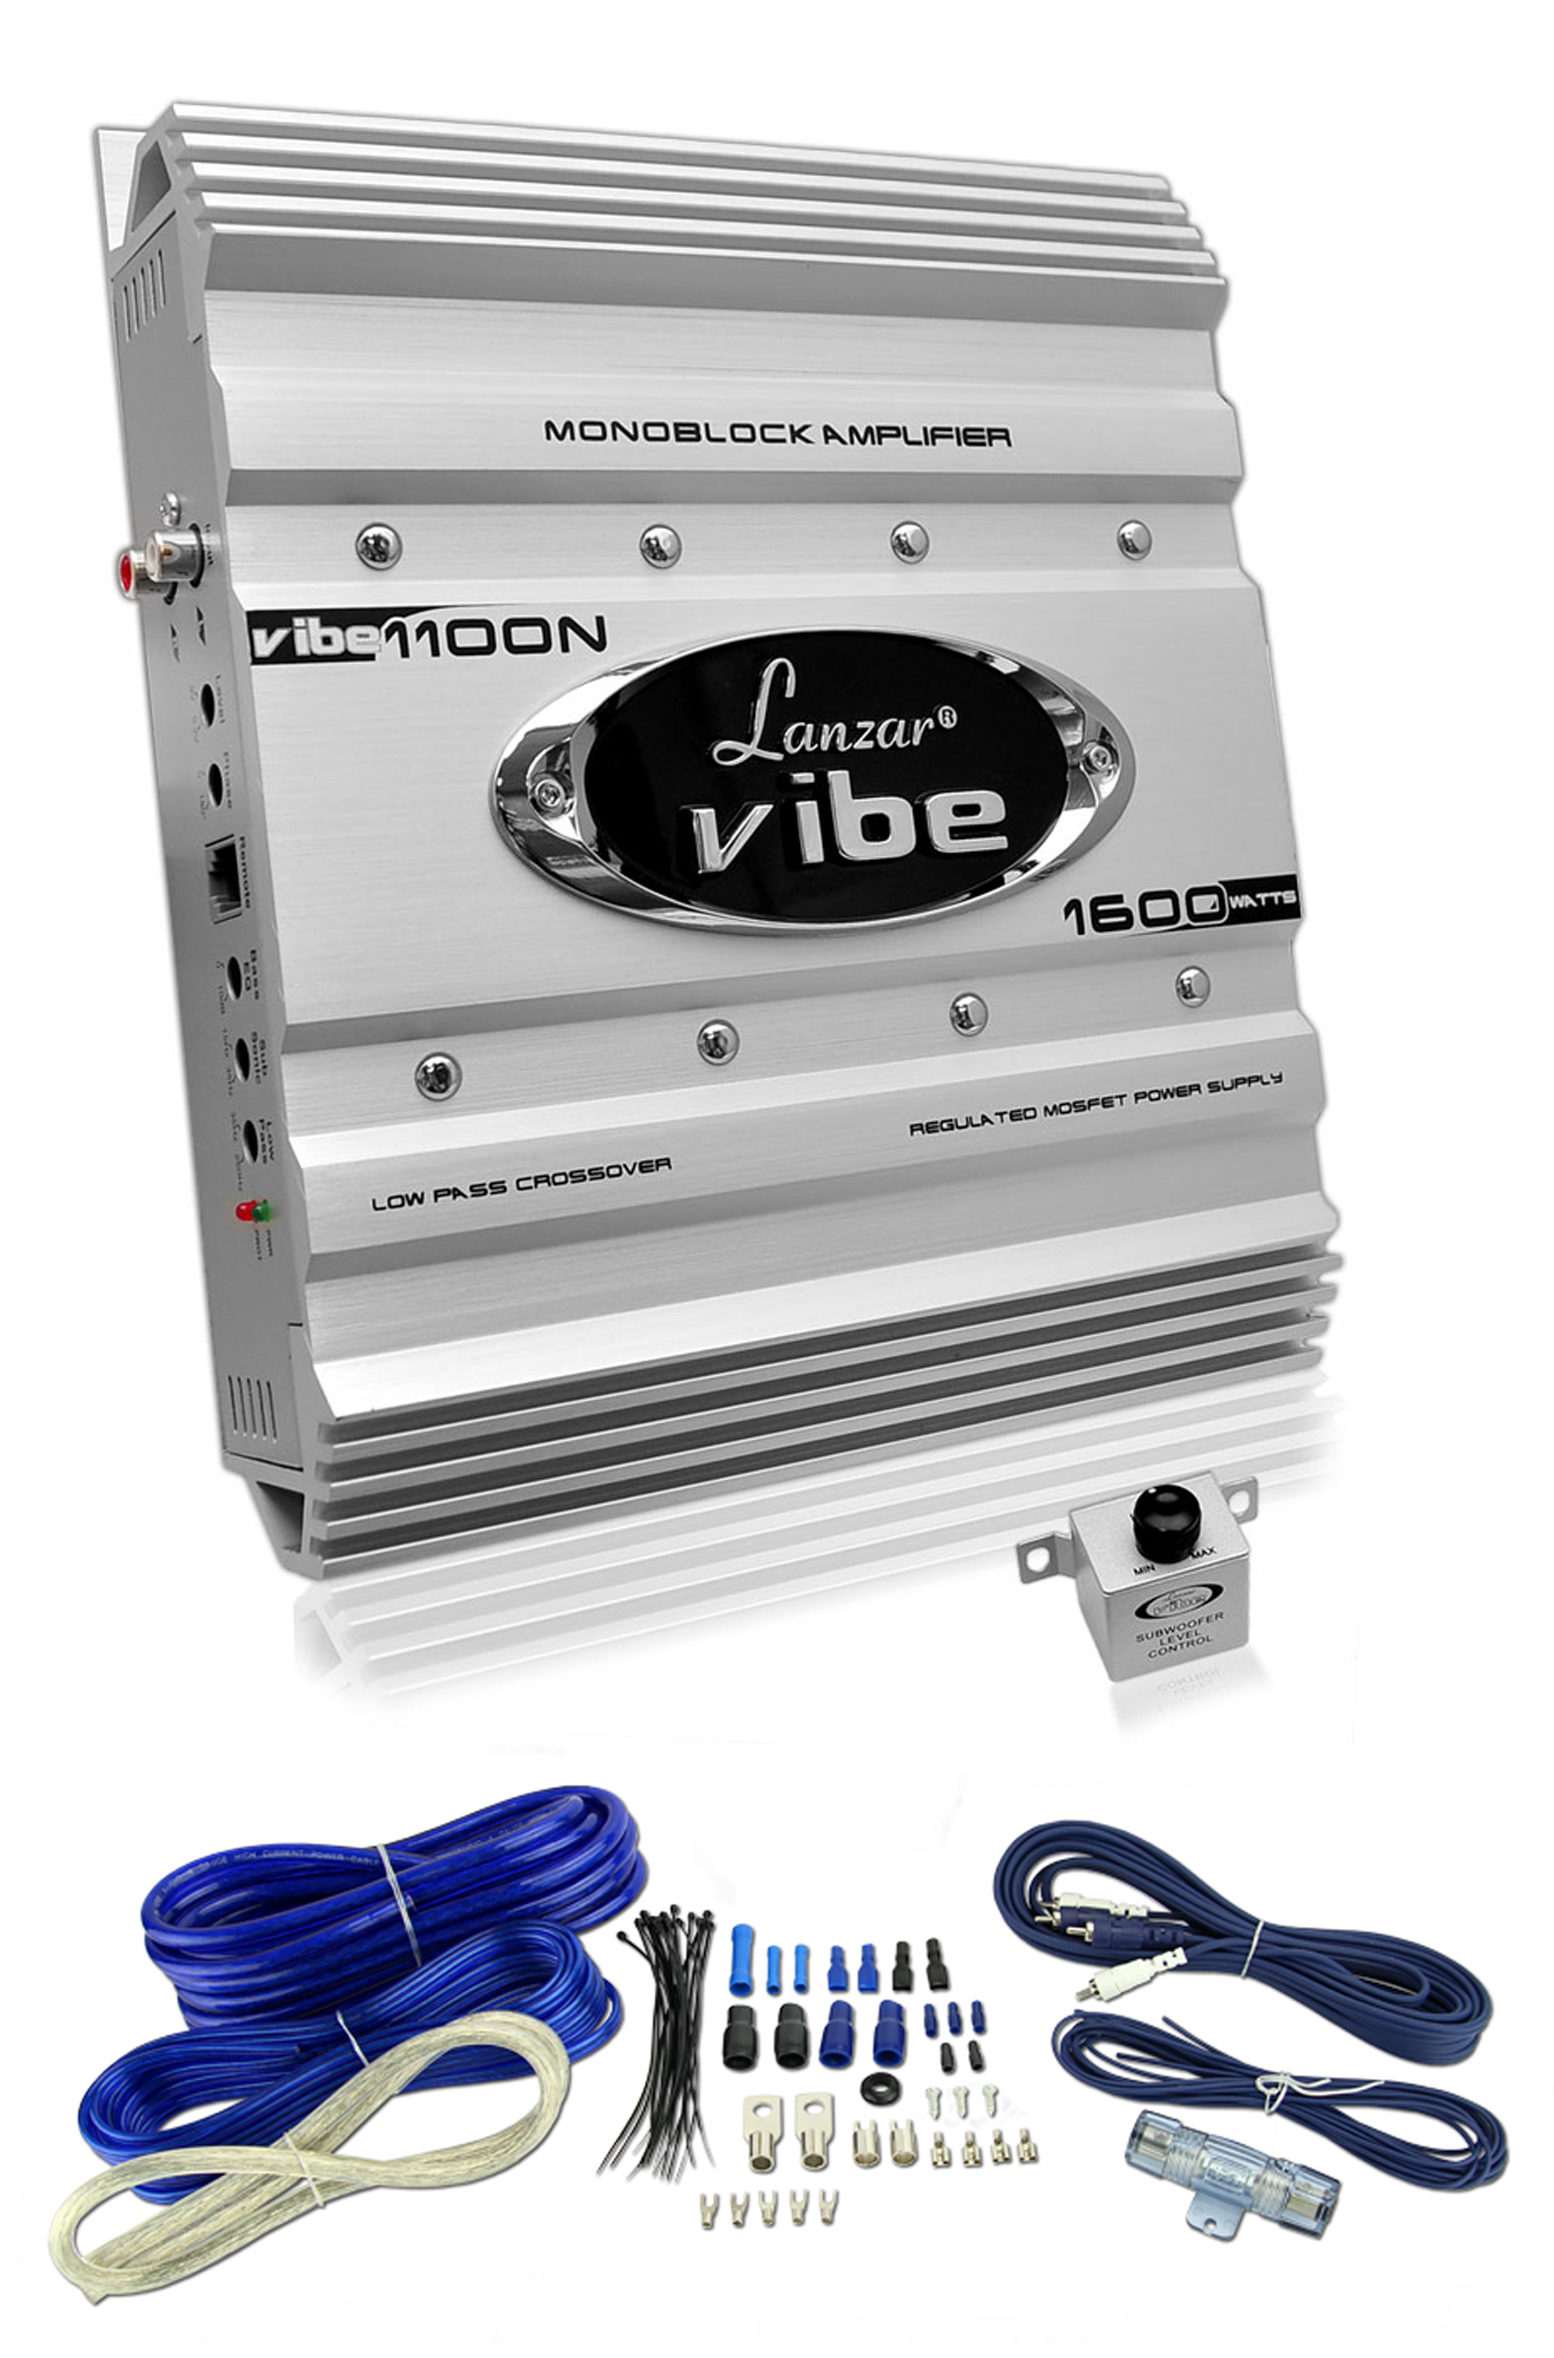 medium resolution of new lanzar vibe1100n 1600 watt mono 1 channel car audio amplifier lanzar amp 1400 1 ch lanzar amp wiring